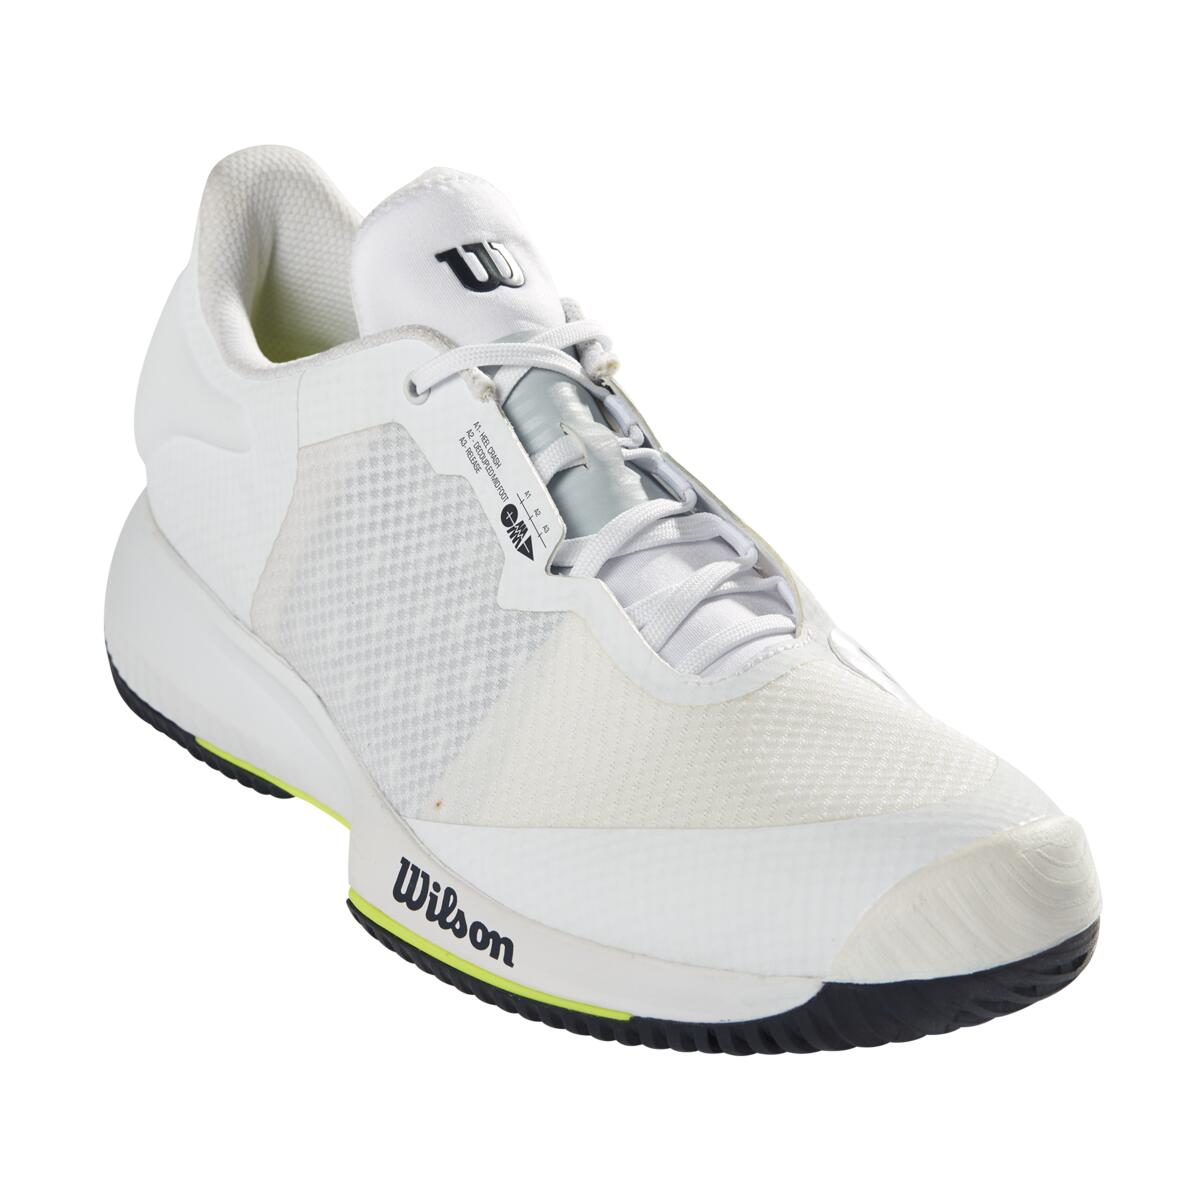 Wilson Kaos Swift AC Mens Tennis Shoes – White/Outer Space